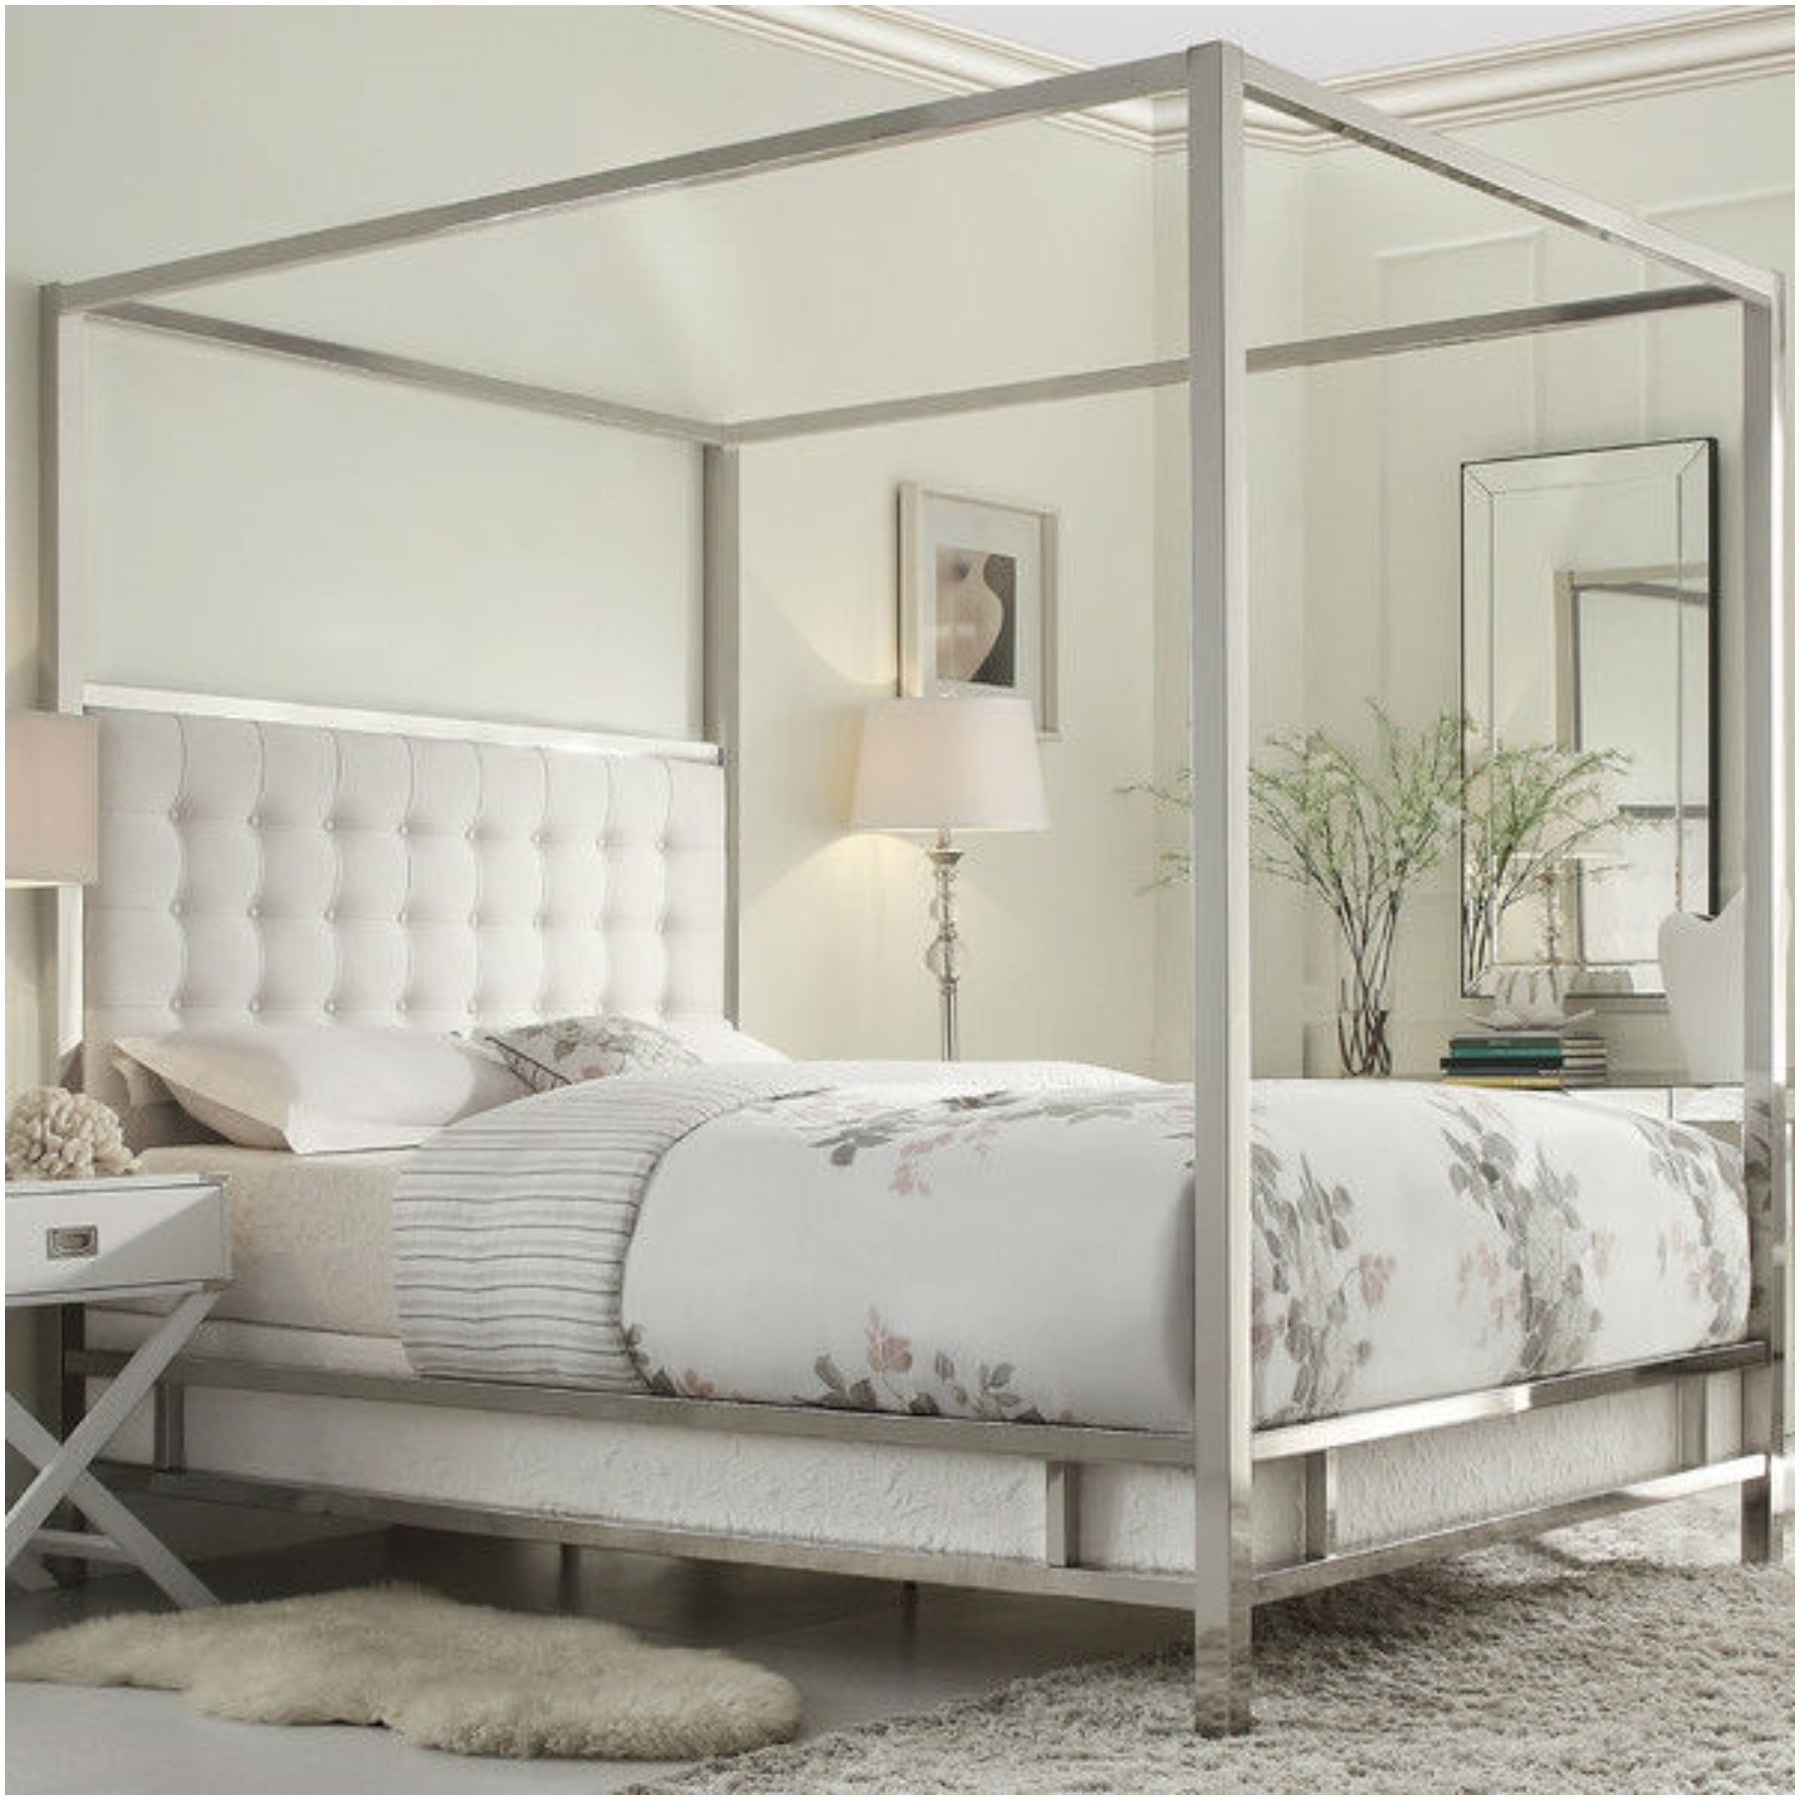 - Metal Canopy Bed Frame Ideas Royals Courage : Metal Canopy Bed